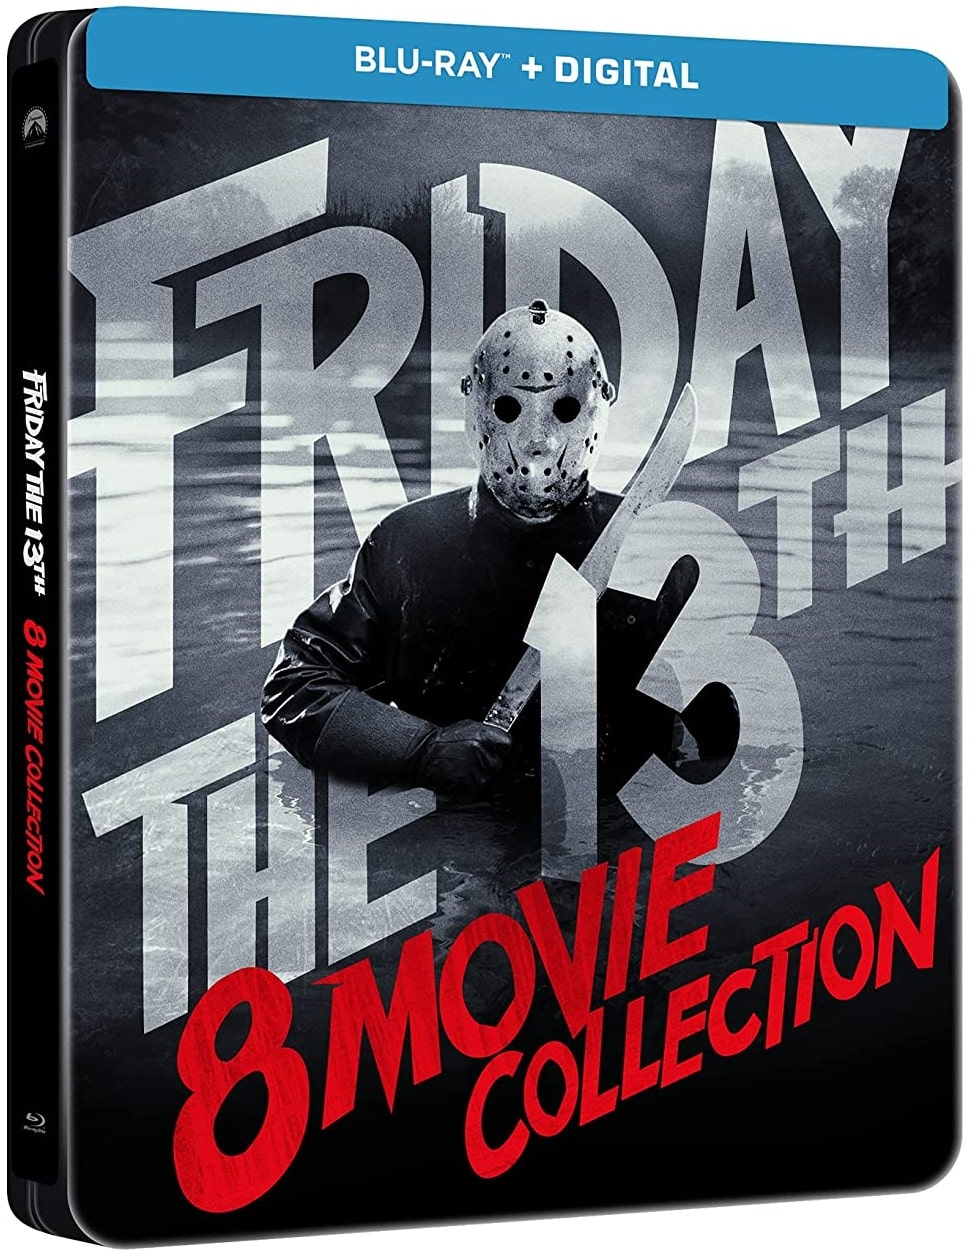 Friday Collection Steelbook US Blu-Ray